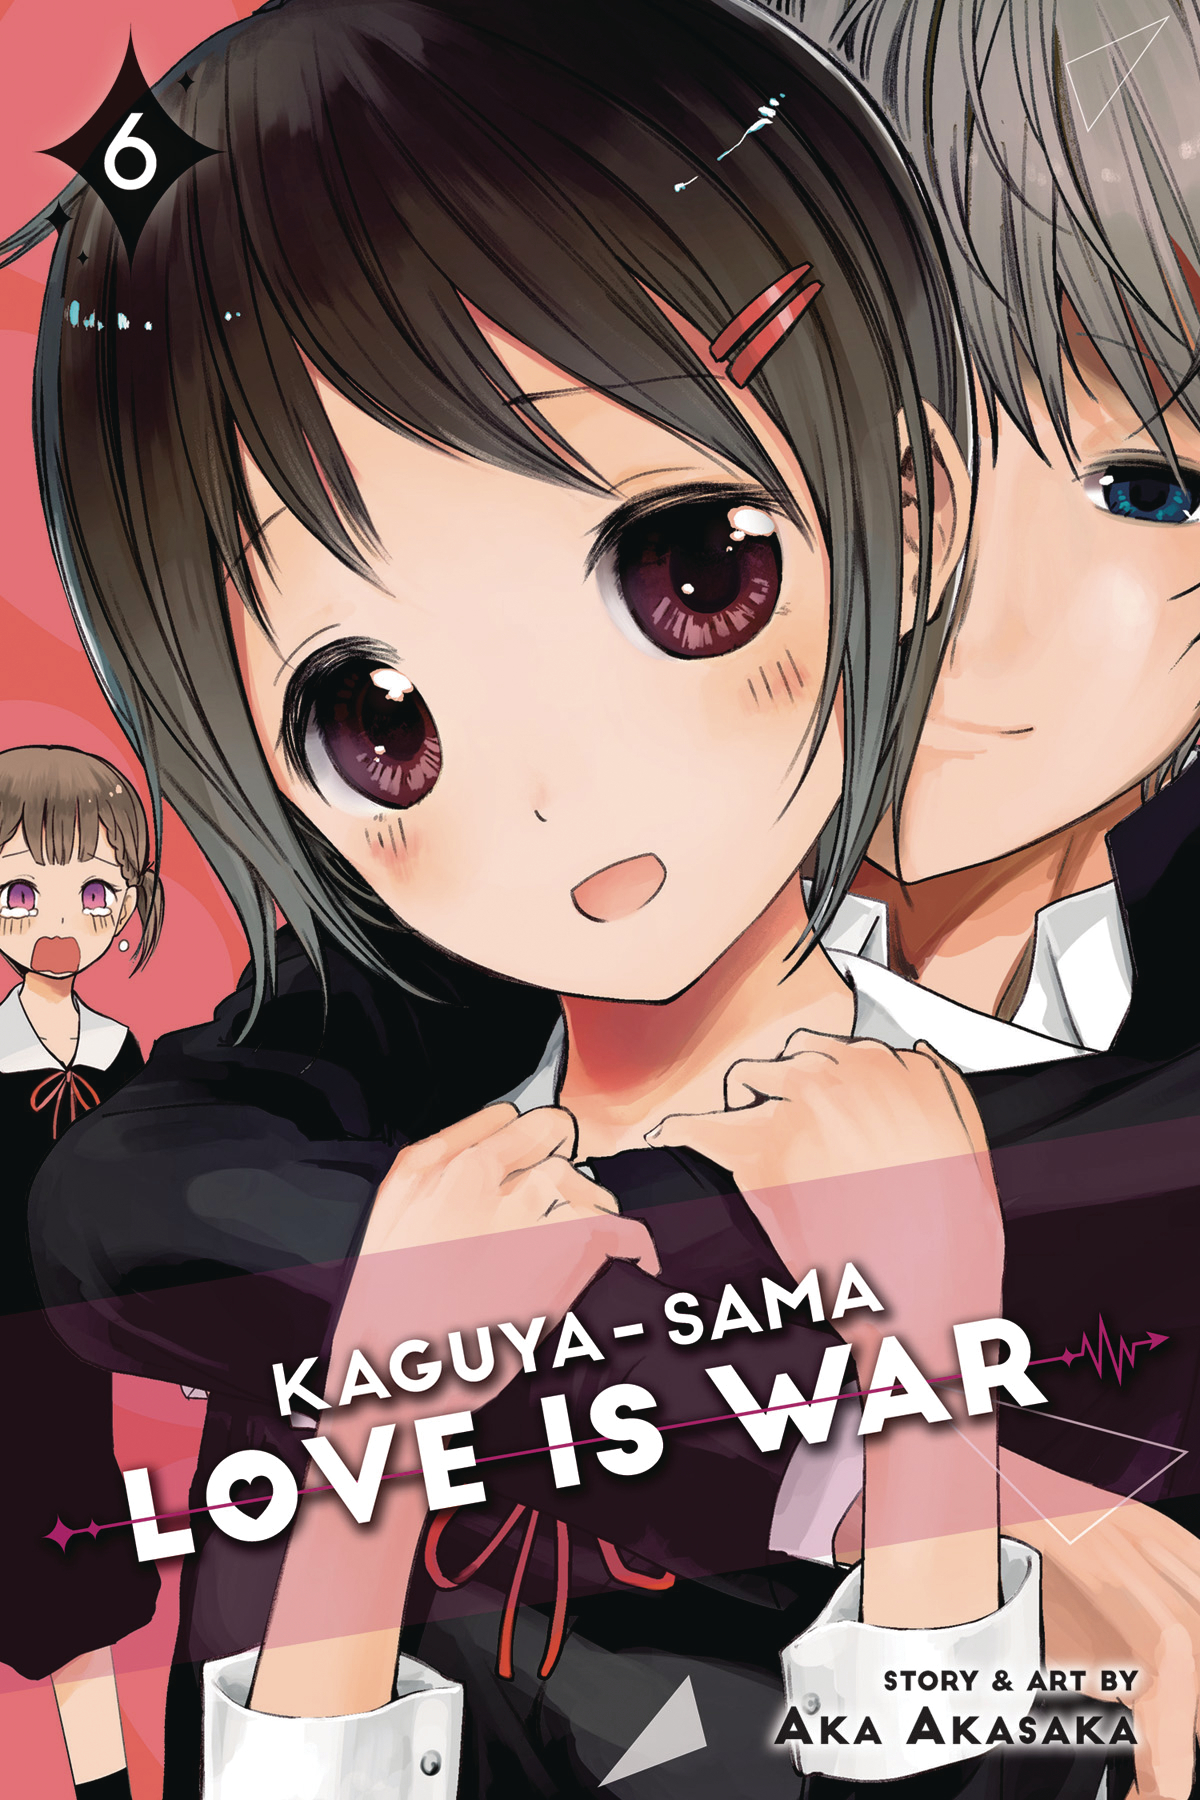 KAGUYA SAMA LOVE IS WAR GN VOL 06